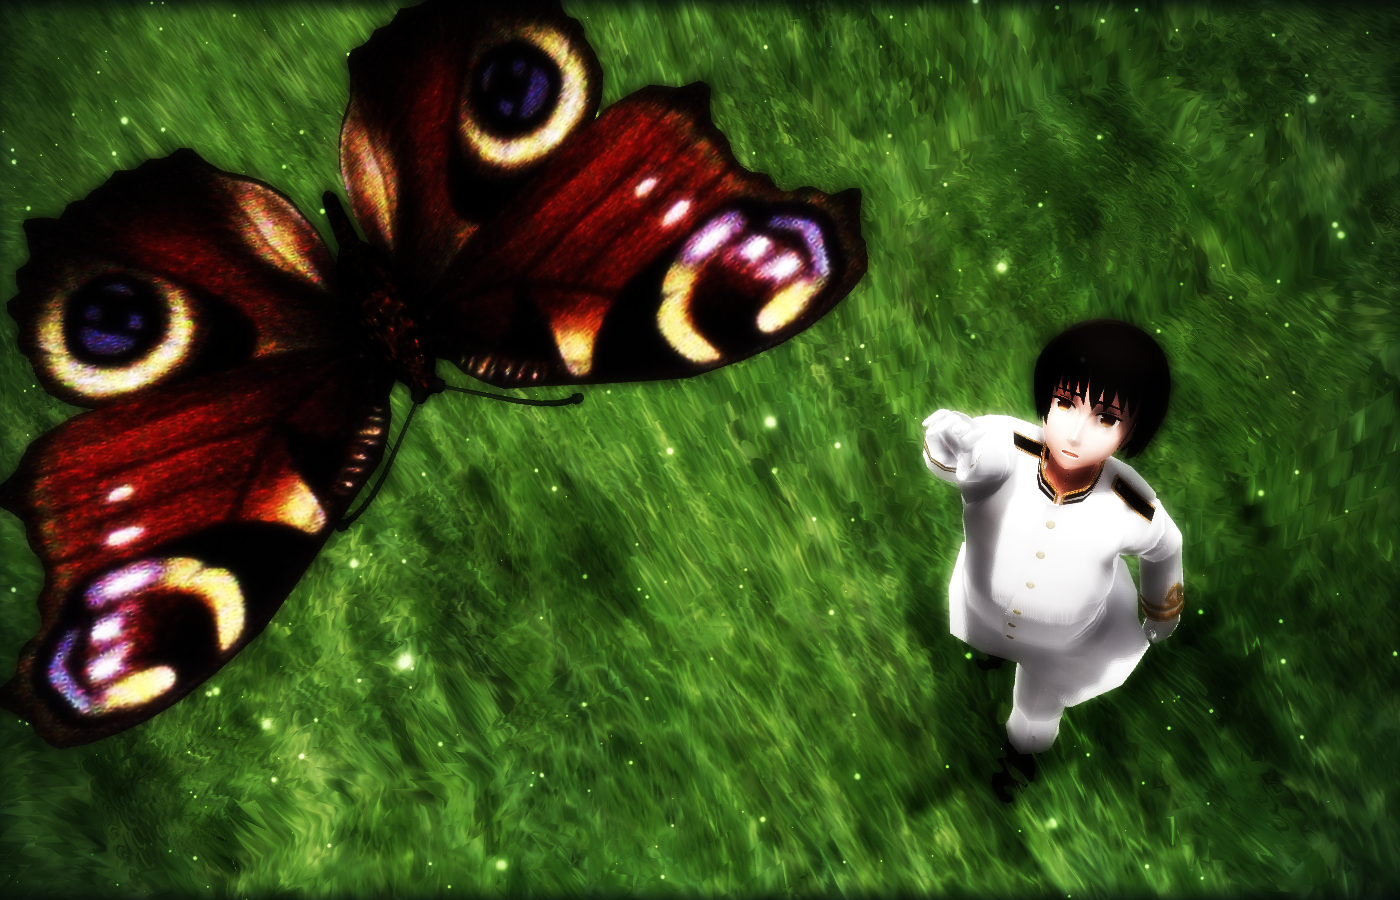 .:Little Butterfly:. by RussiaRomano